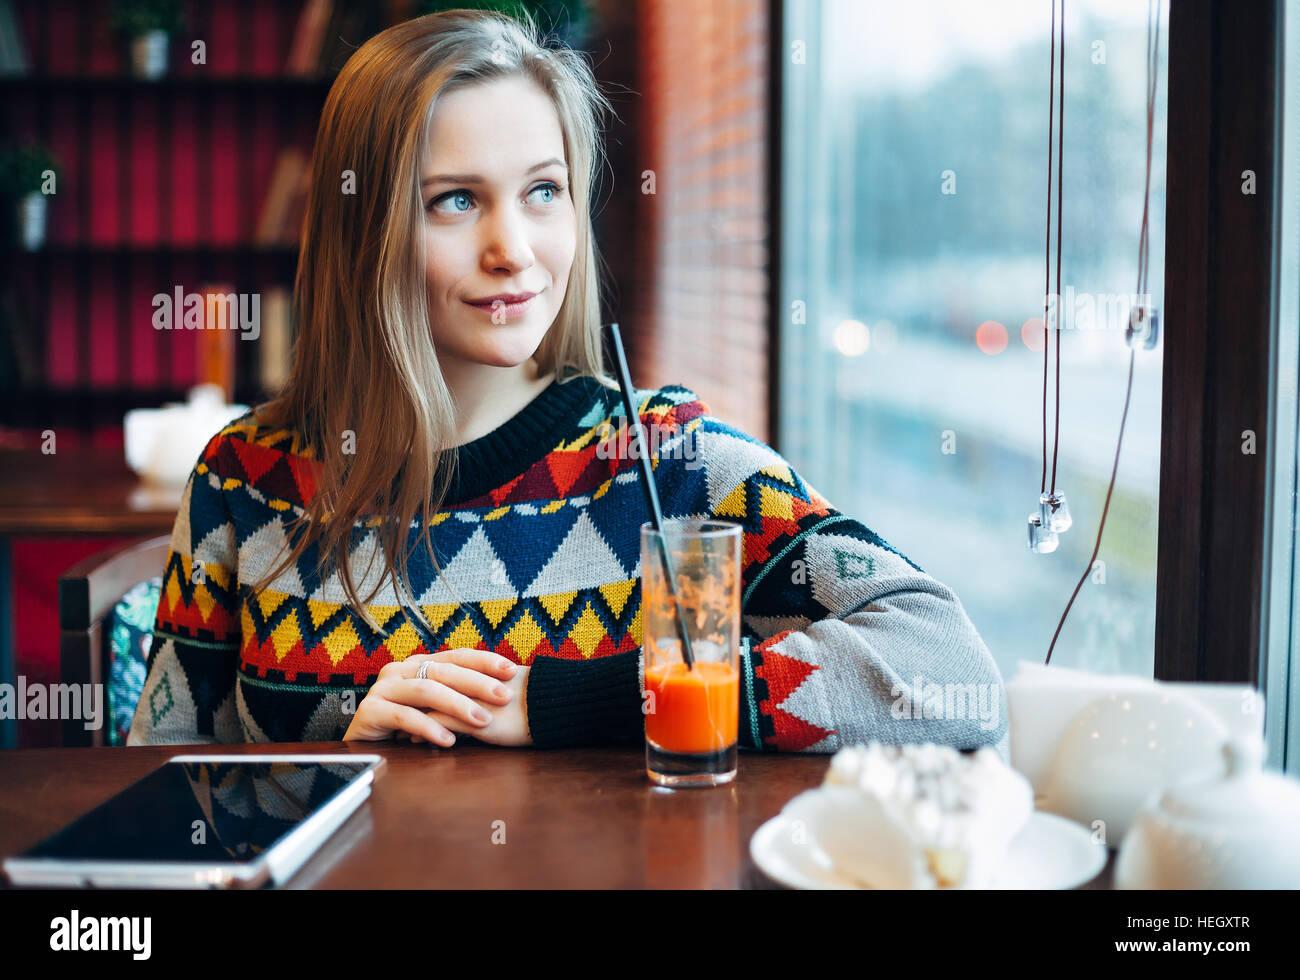 Photo of a woman drinking juice through window Stock Photo